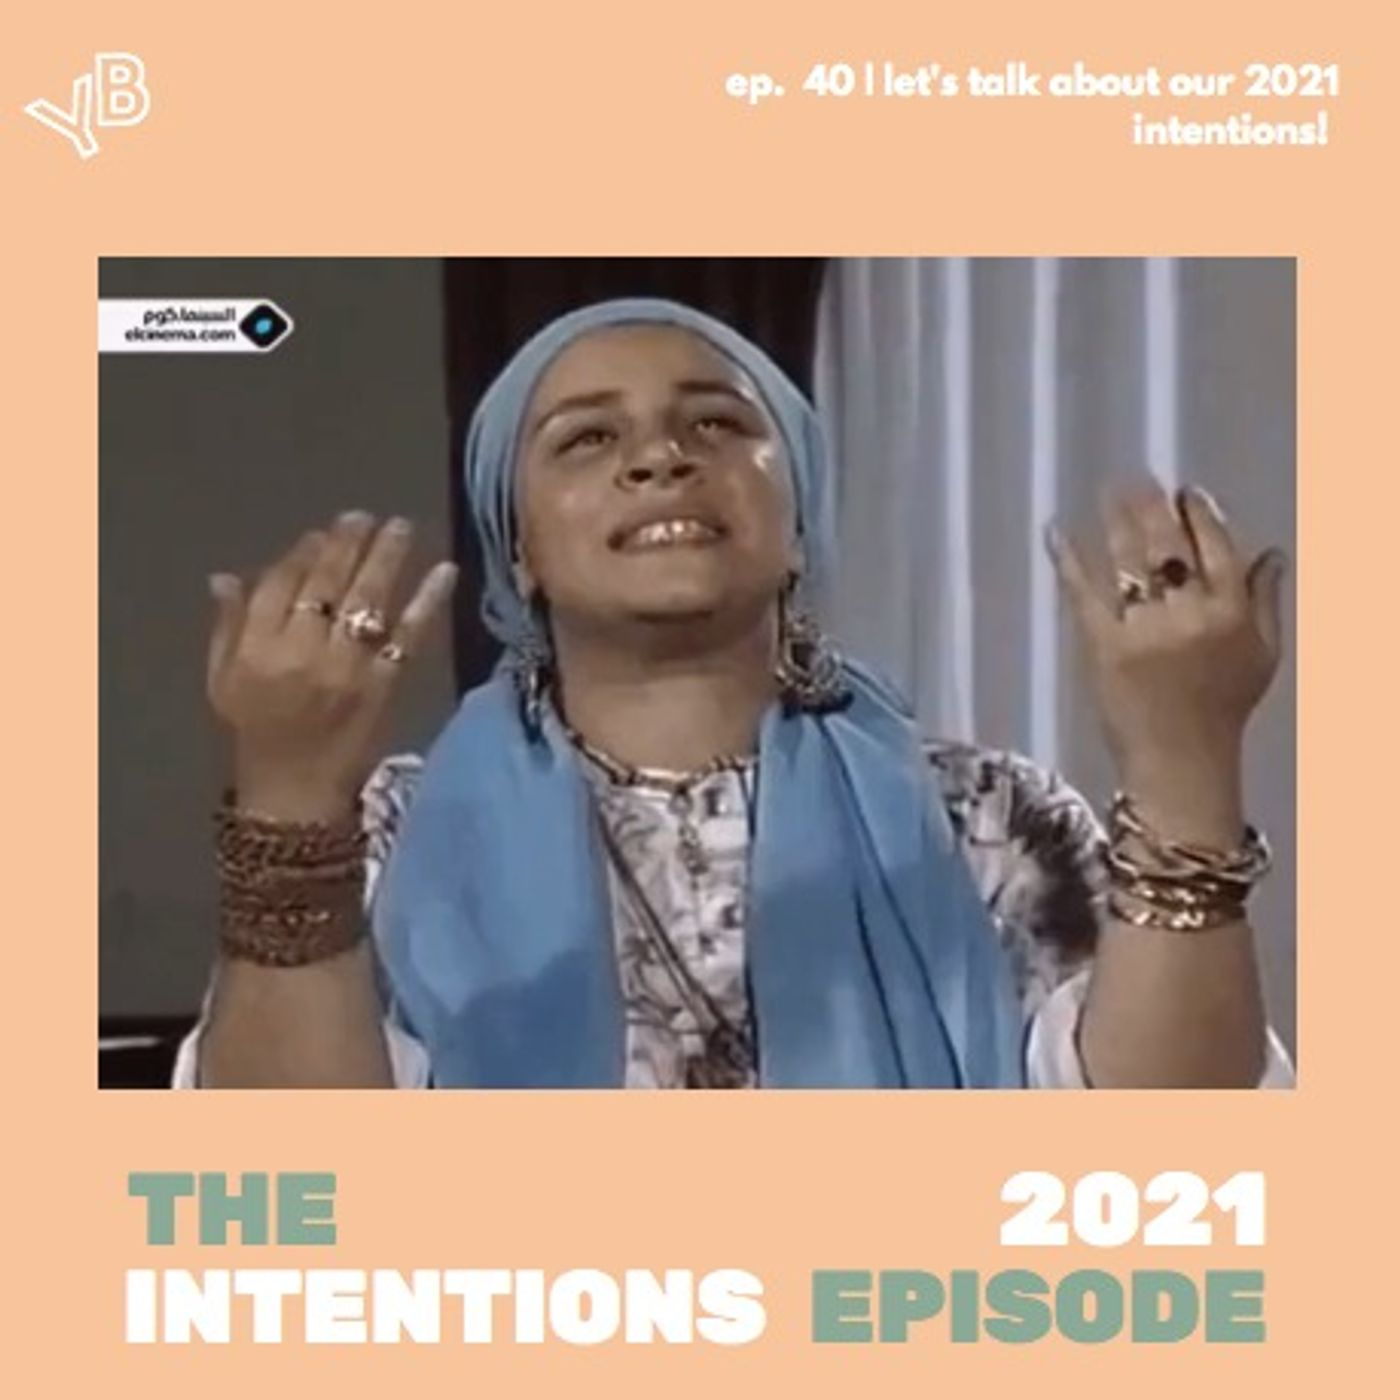 40 | Let's talk about 2021 Intentions!